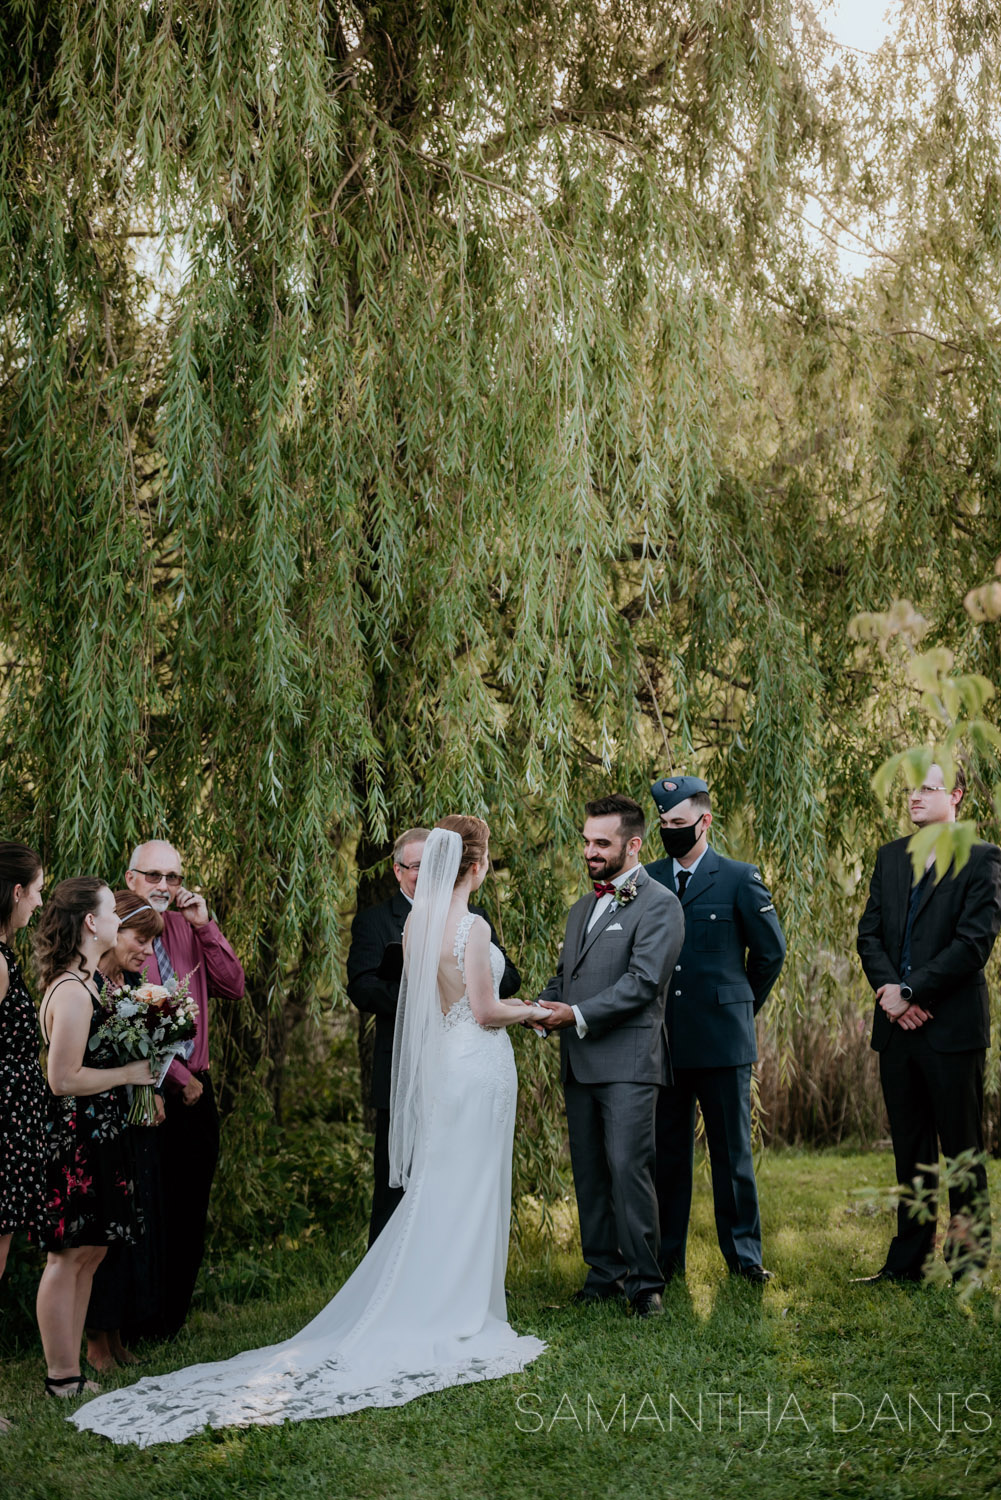 Sun shines through the willow tree as an Ottawa Bride and groom tell each other their vows during their elopement. Samantha Danis Photography